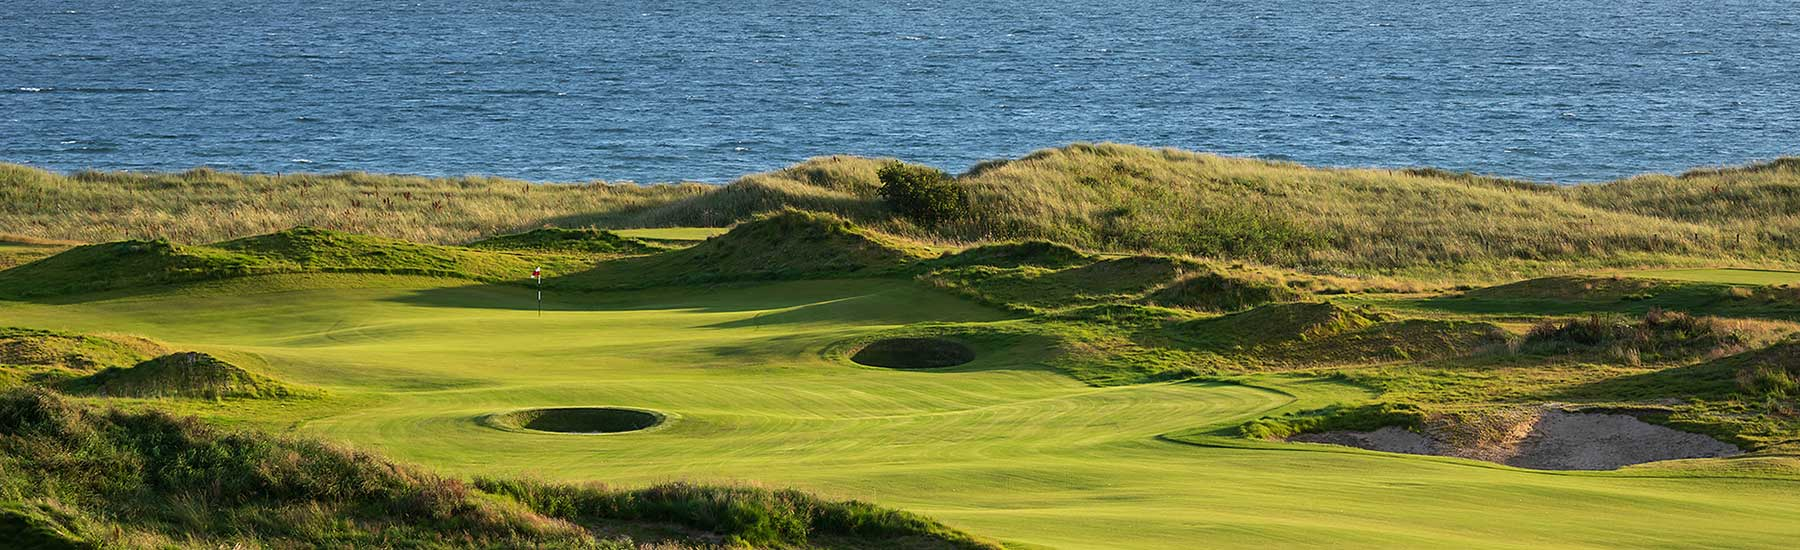 Best Links Golf Courses: New Vs Old